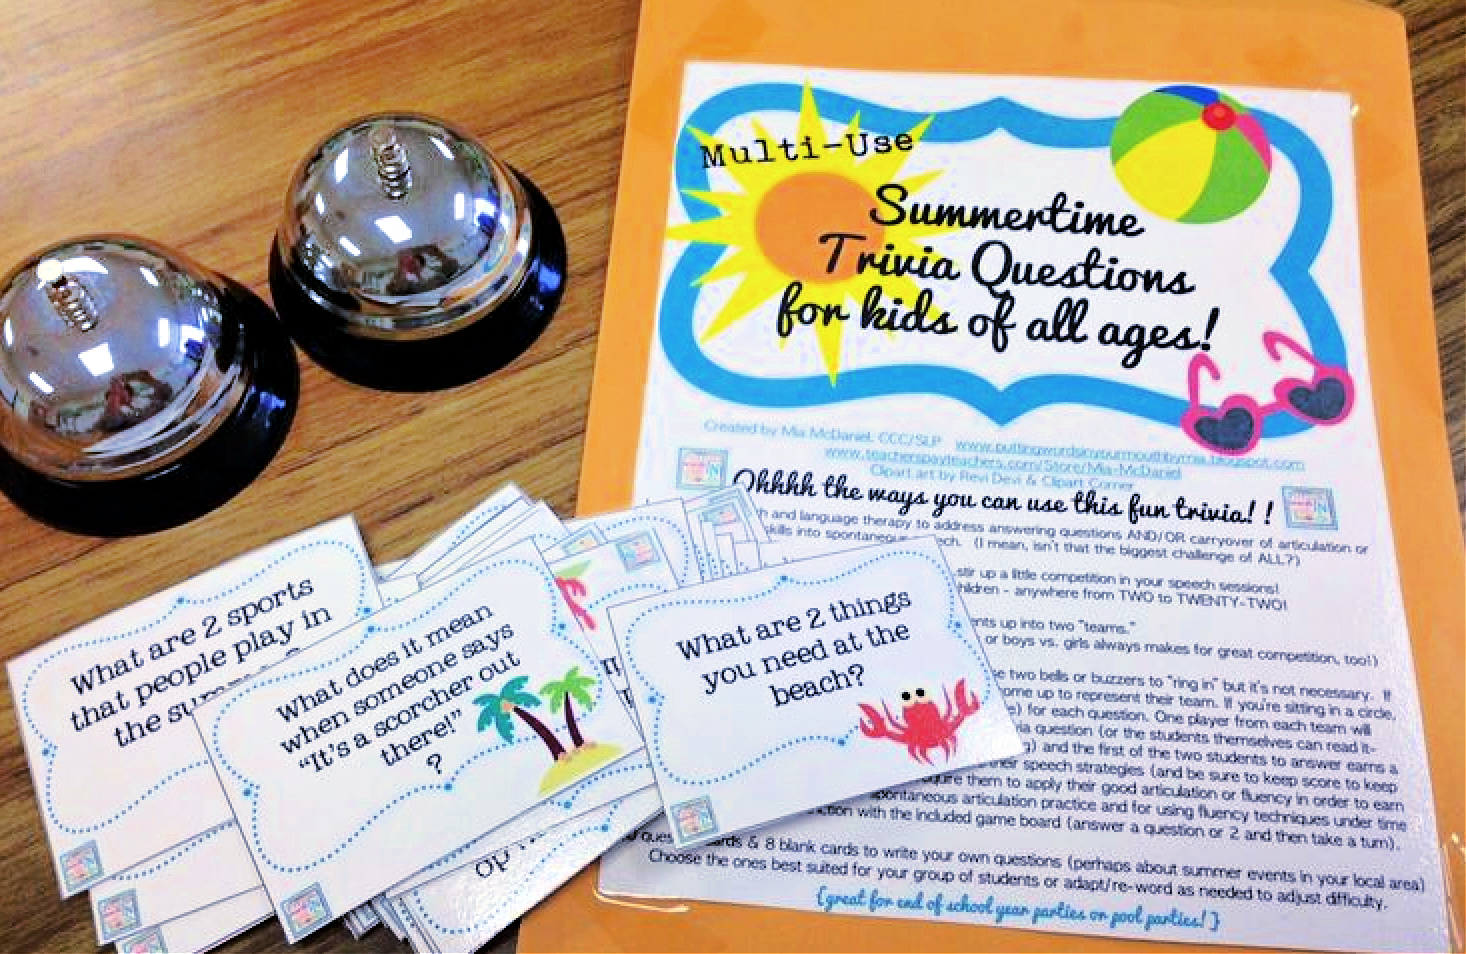 """a photo of summer question cards, 2 service bells and a manilla envelope on a table. The folder is labeled """"Summertime trivia questions for kids of all ages."""""""